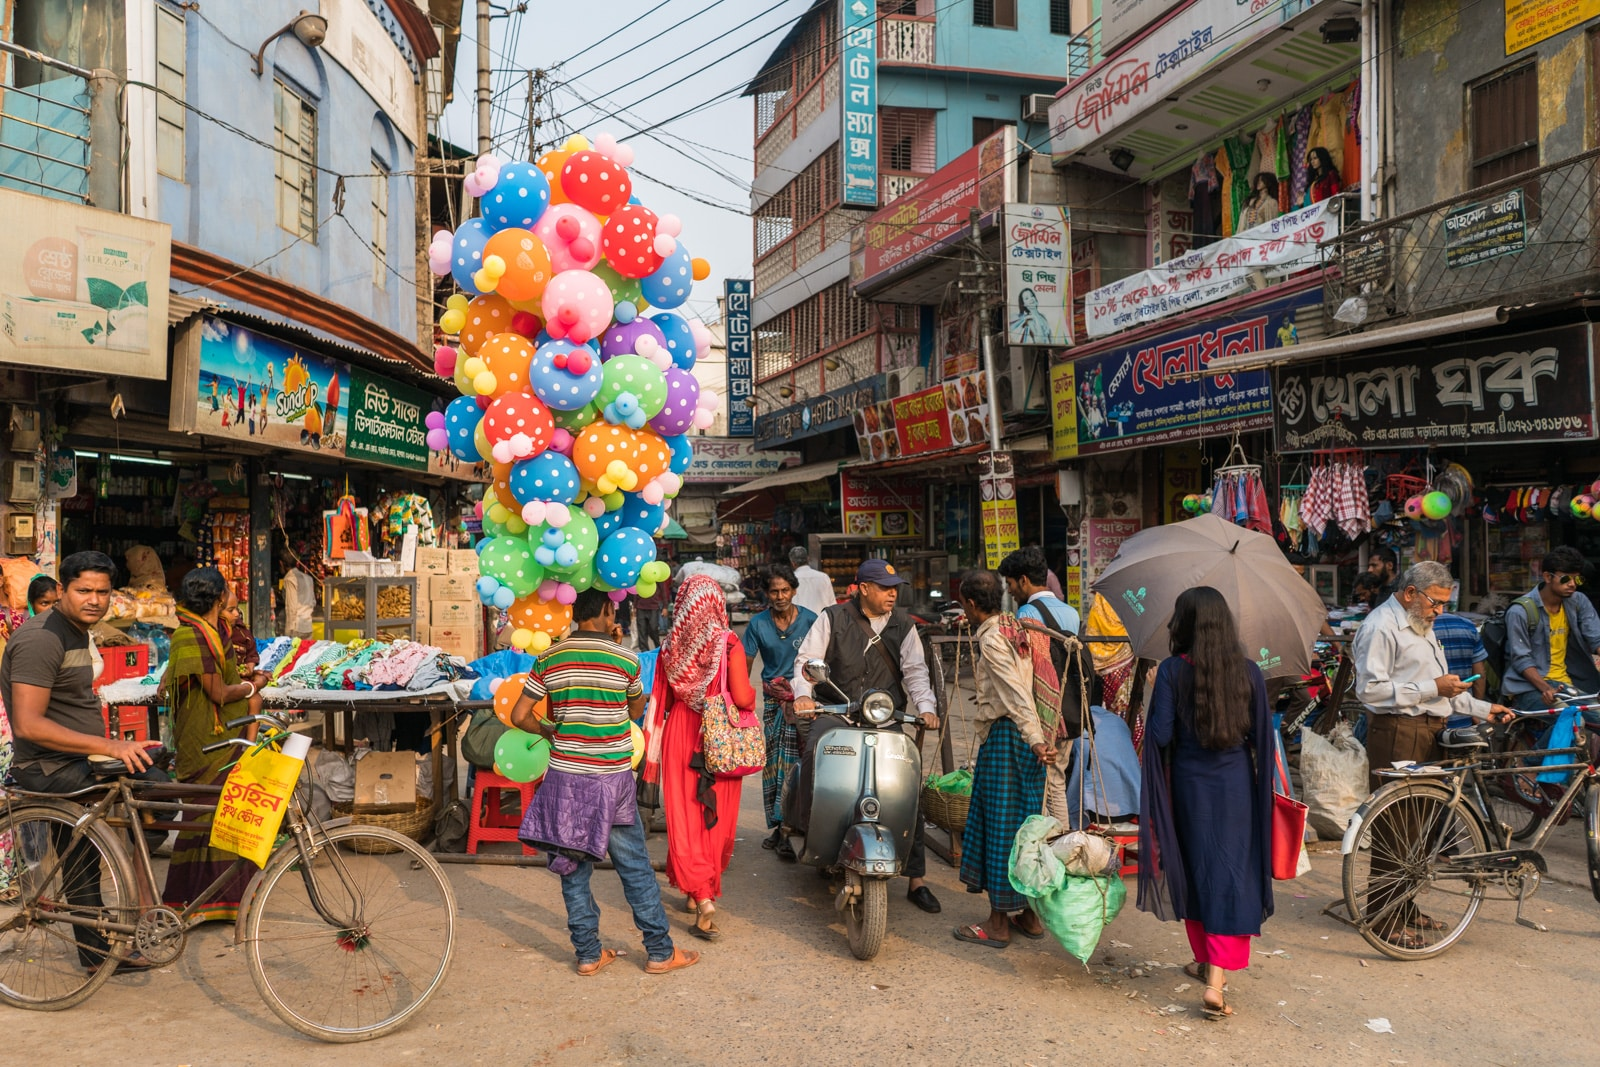 Backpacking in Bangladesh travel guide - Rainbow balloon salesman in central Jessore - Lost With Purpose travel blog